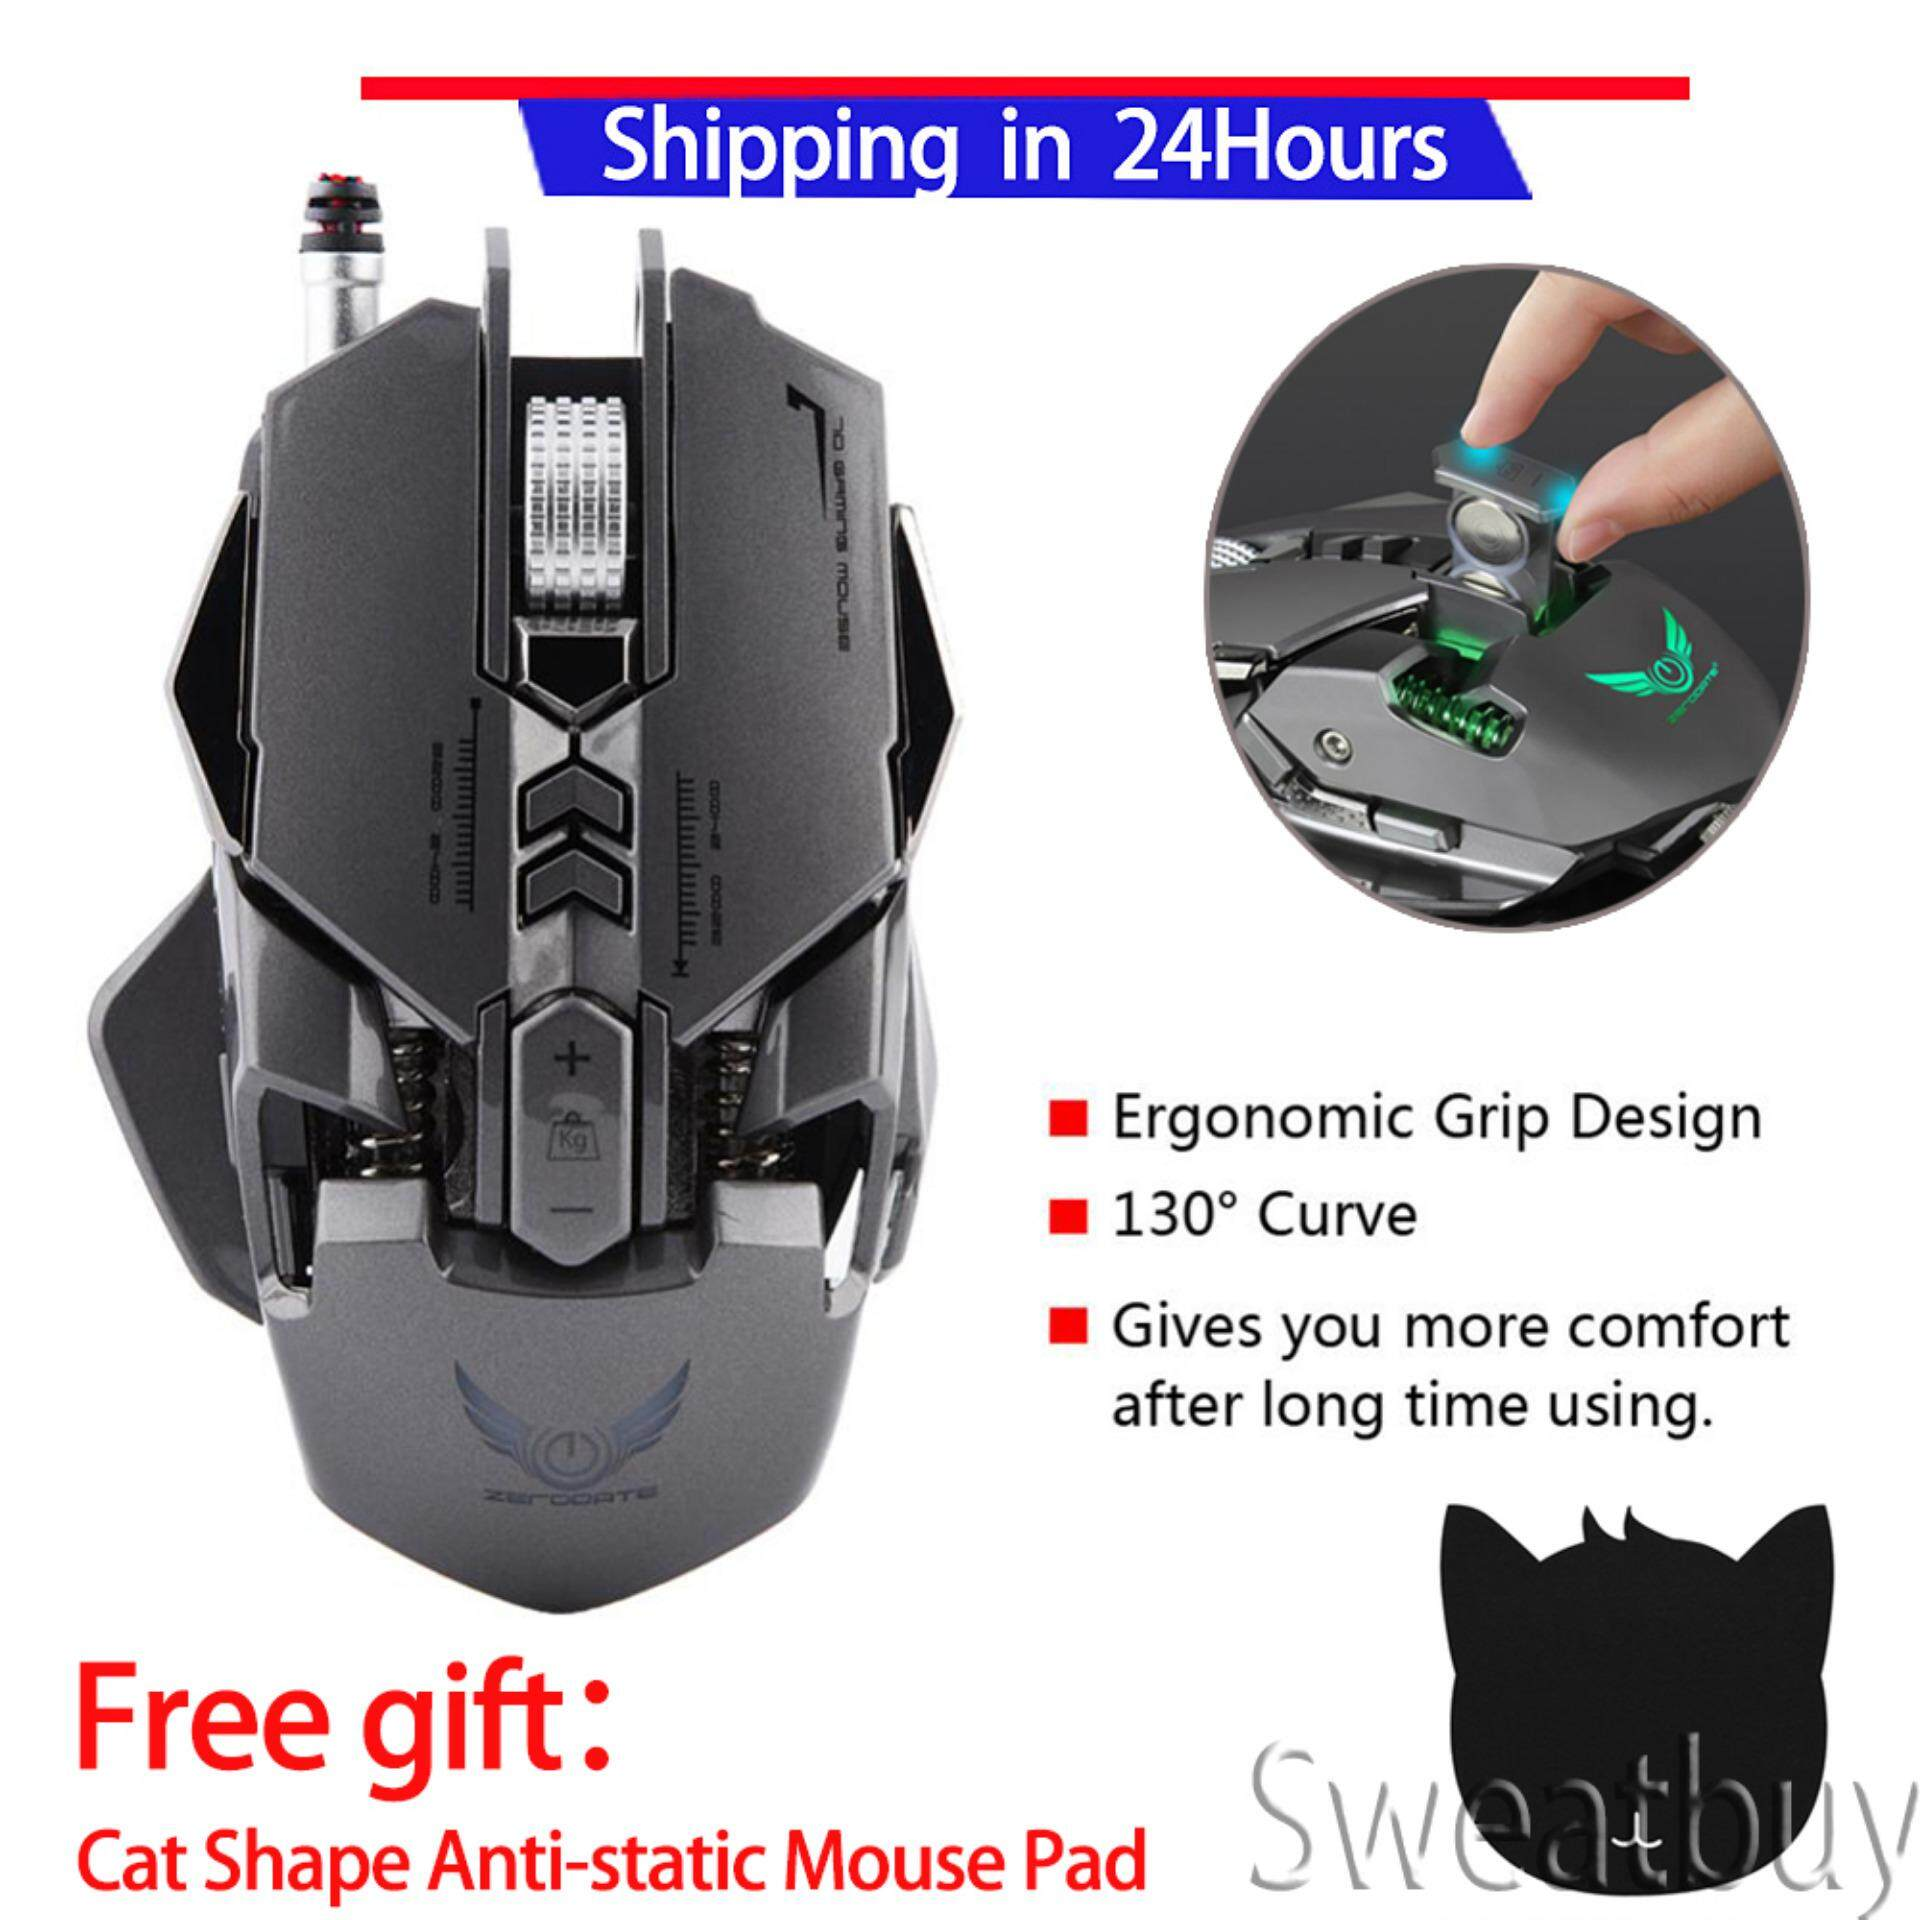 【Buy 1 Get 1 Free Gift】ZERODATE X300GY Gaming Mouse Mechanical Gaming Mouse 250-4000 DPI Adjust Gamer Mice for PC Malaysia